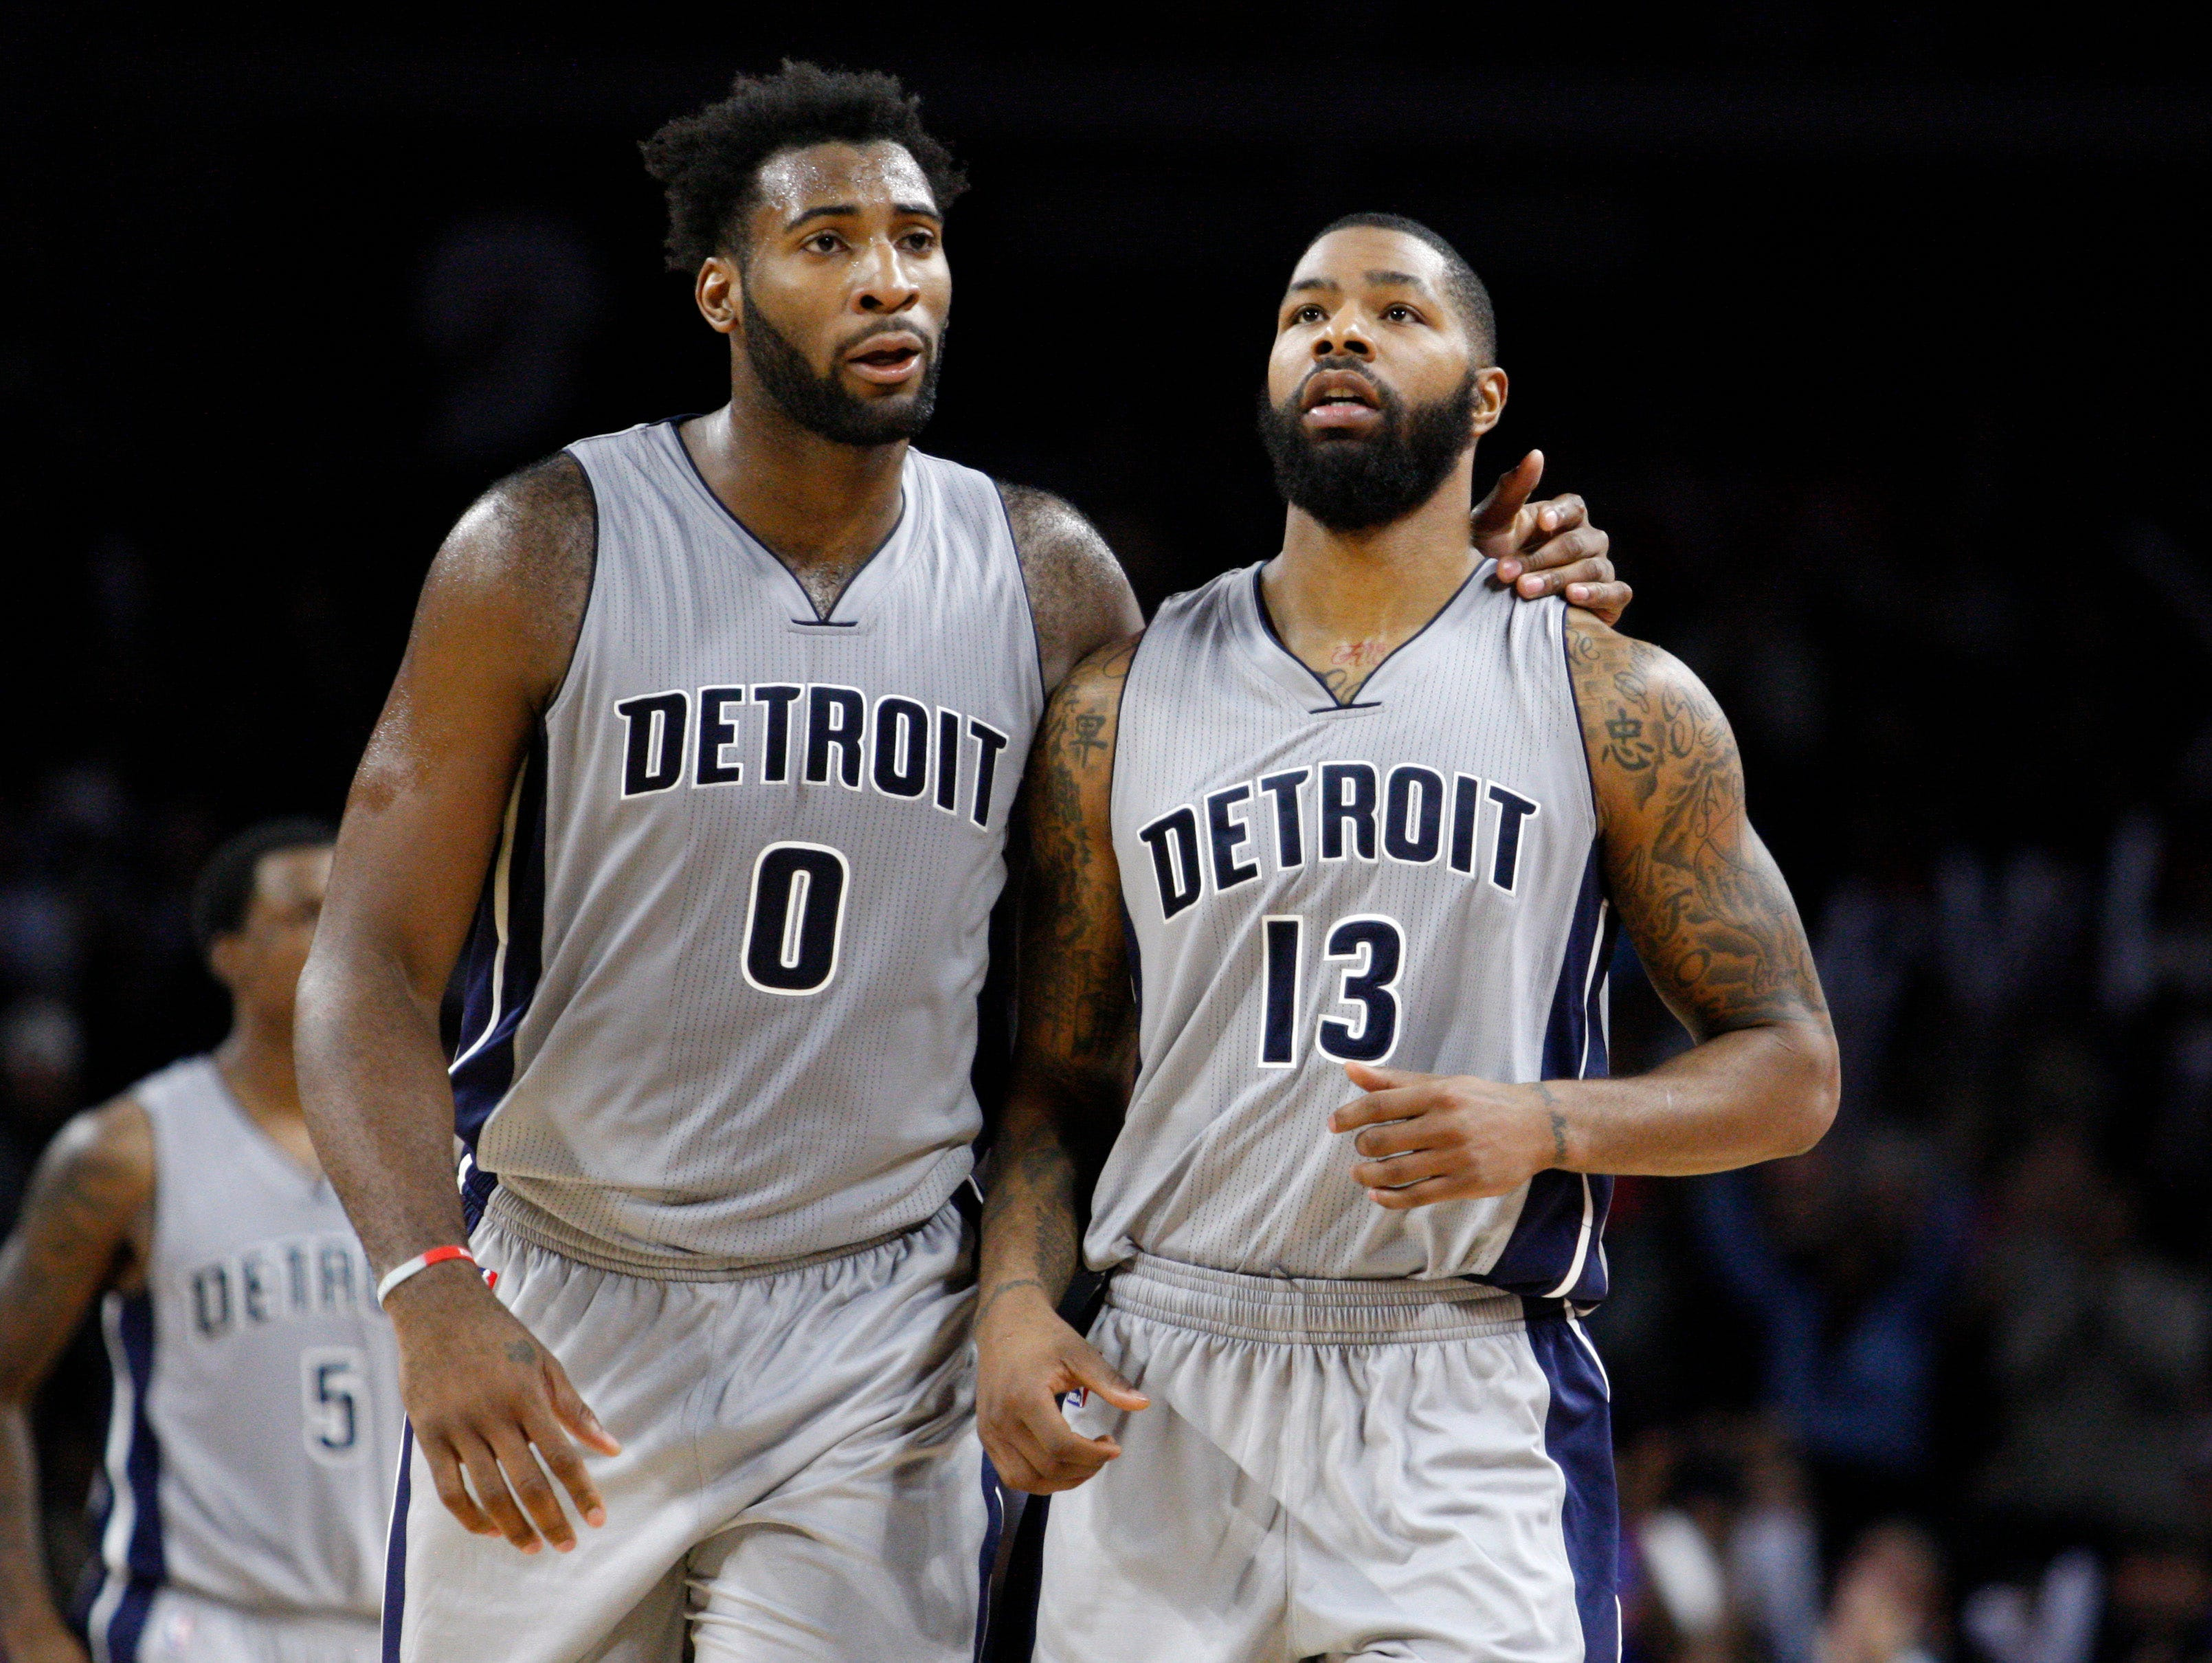 Oct 30, 2015; Auburn Hills, MI, USA; Detroit Pistons center Andre Drummond (0) puts his arm around forward Marcus Morris (13) during the fourth quarter against the Chicago Bulls at The Palace of Auburn Hills. Pistons win in overtime 98-94.